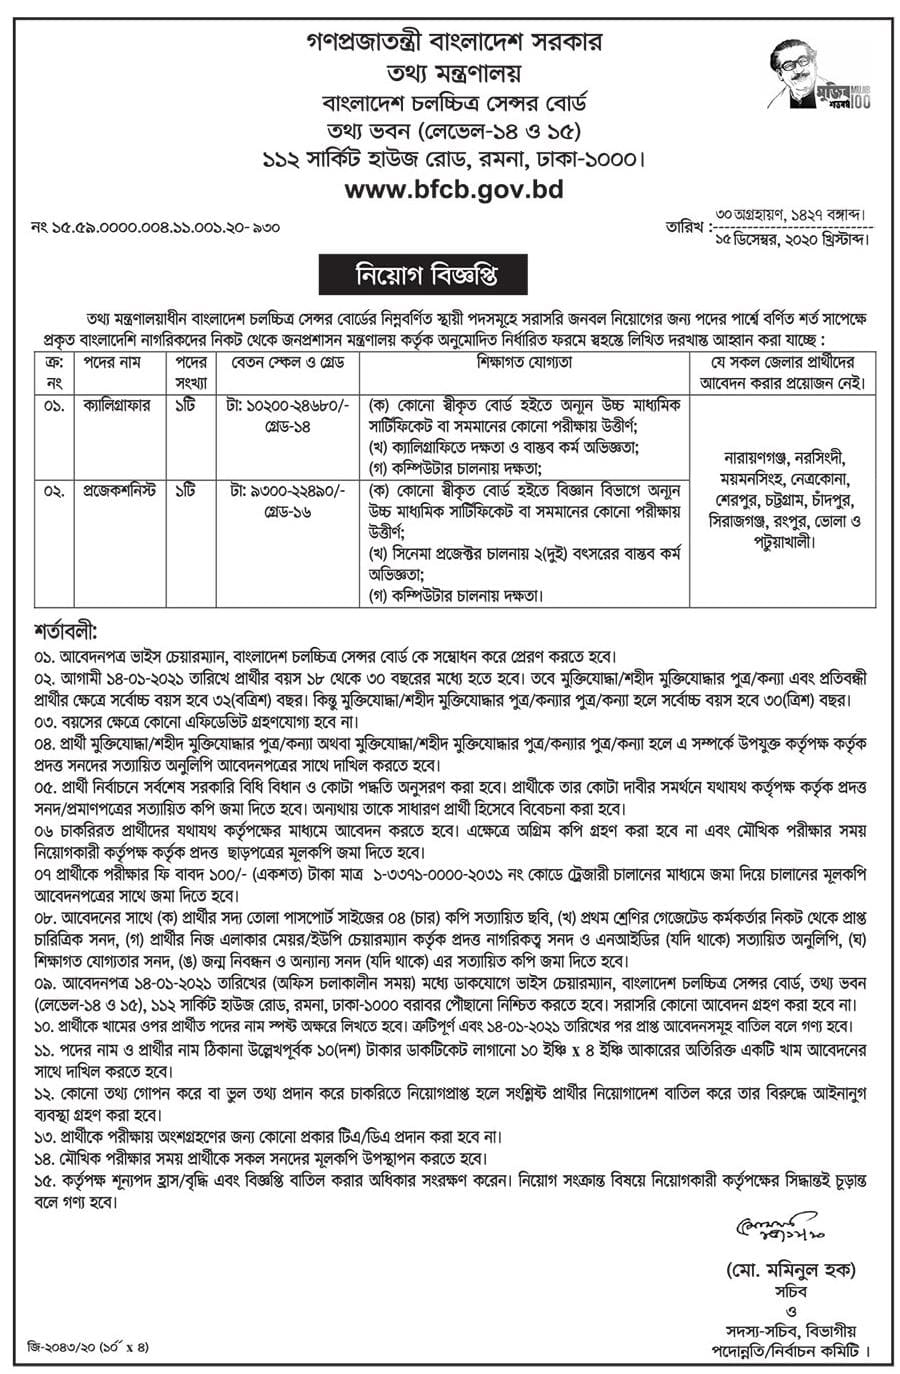 Bangladesh Film Censor Board BFCB Job Circular